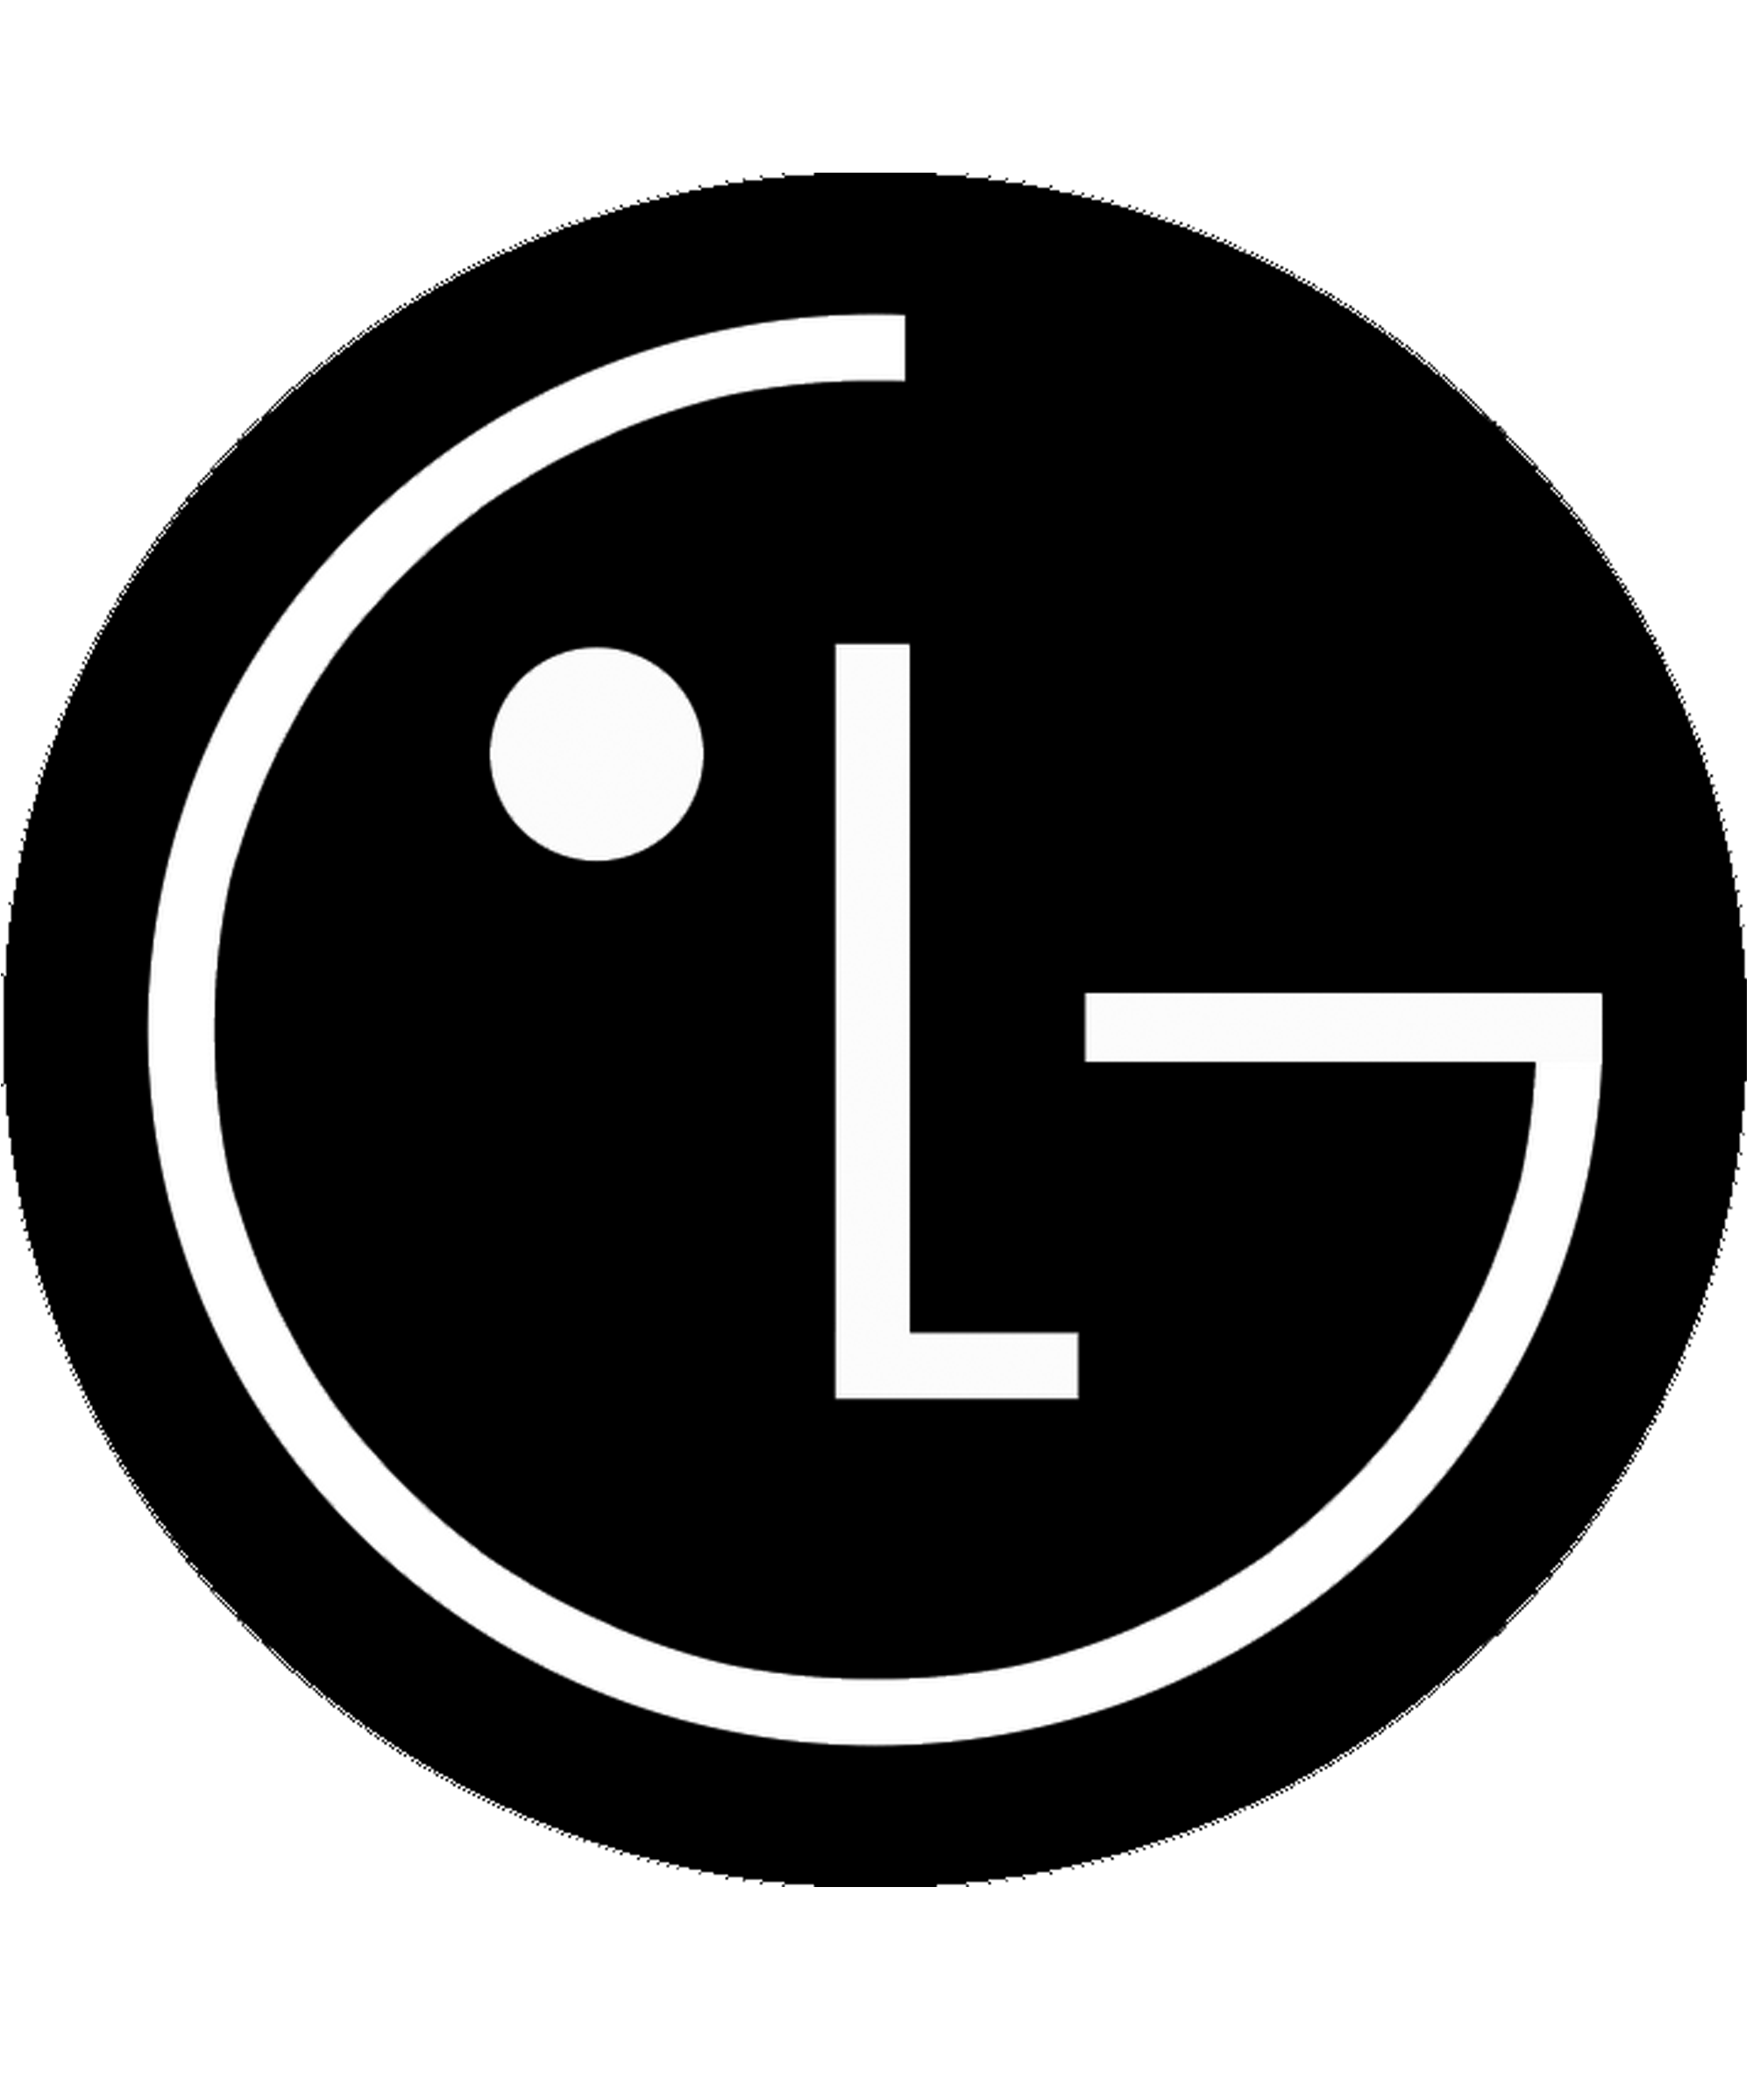 Lg PNG Image | Web Icons PNG